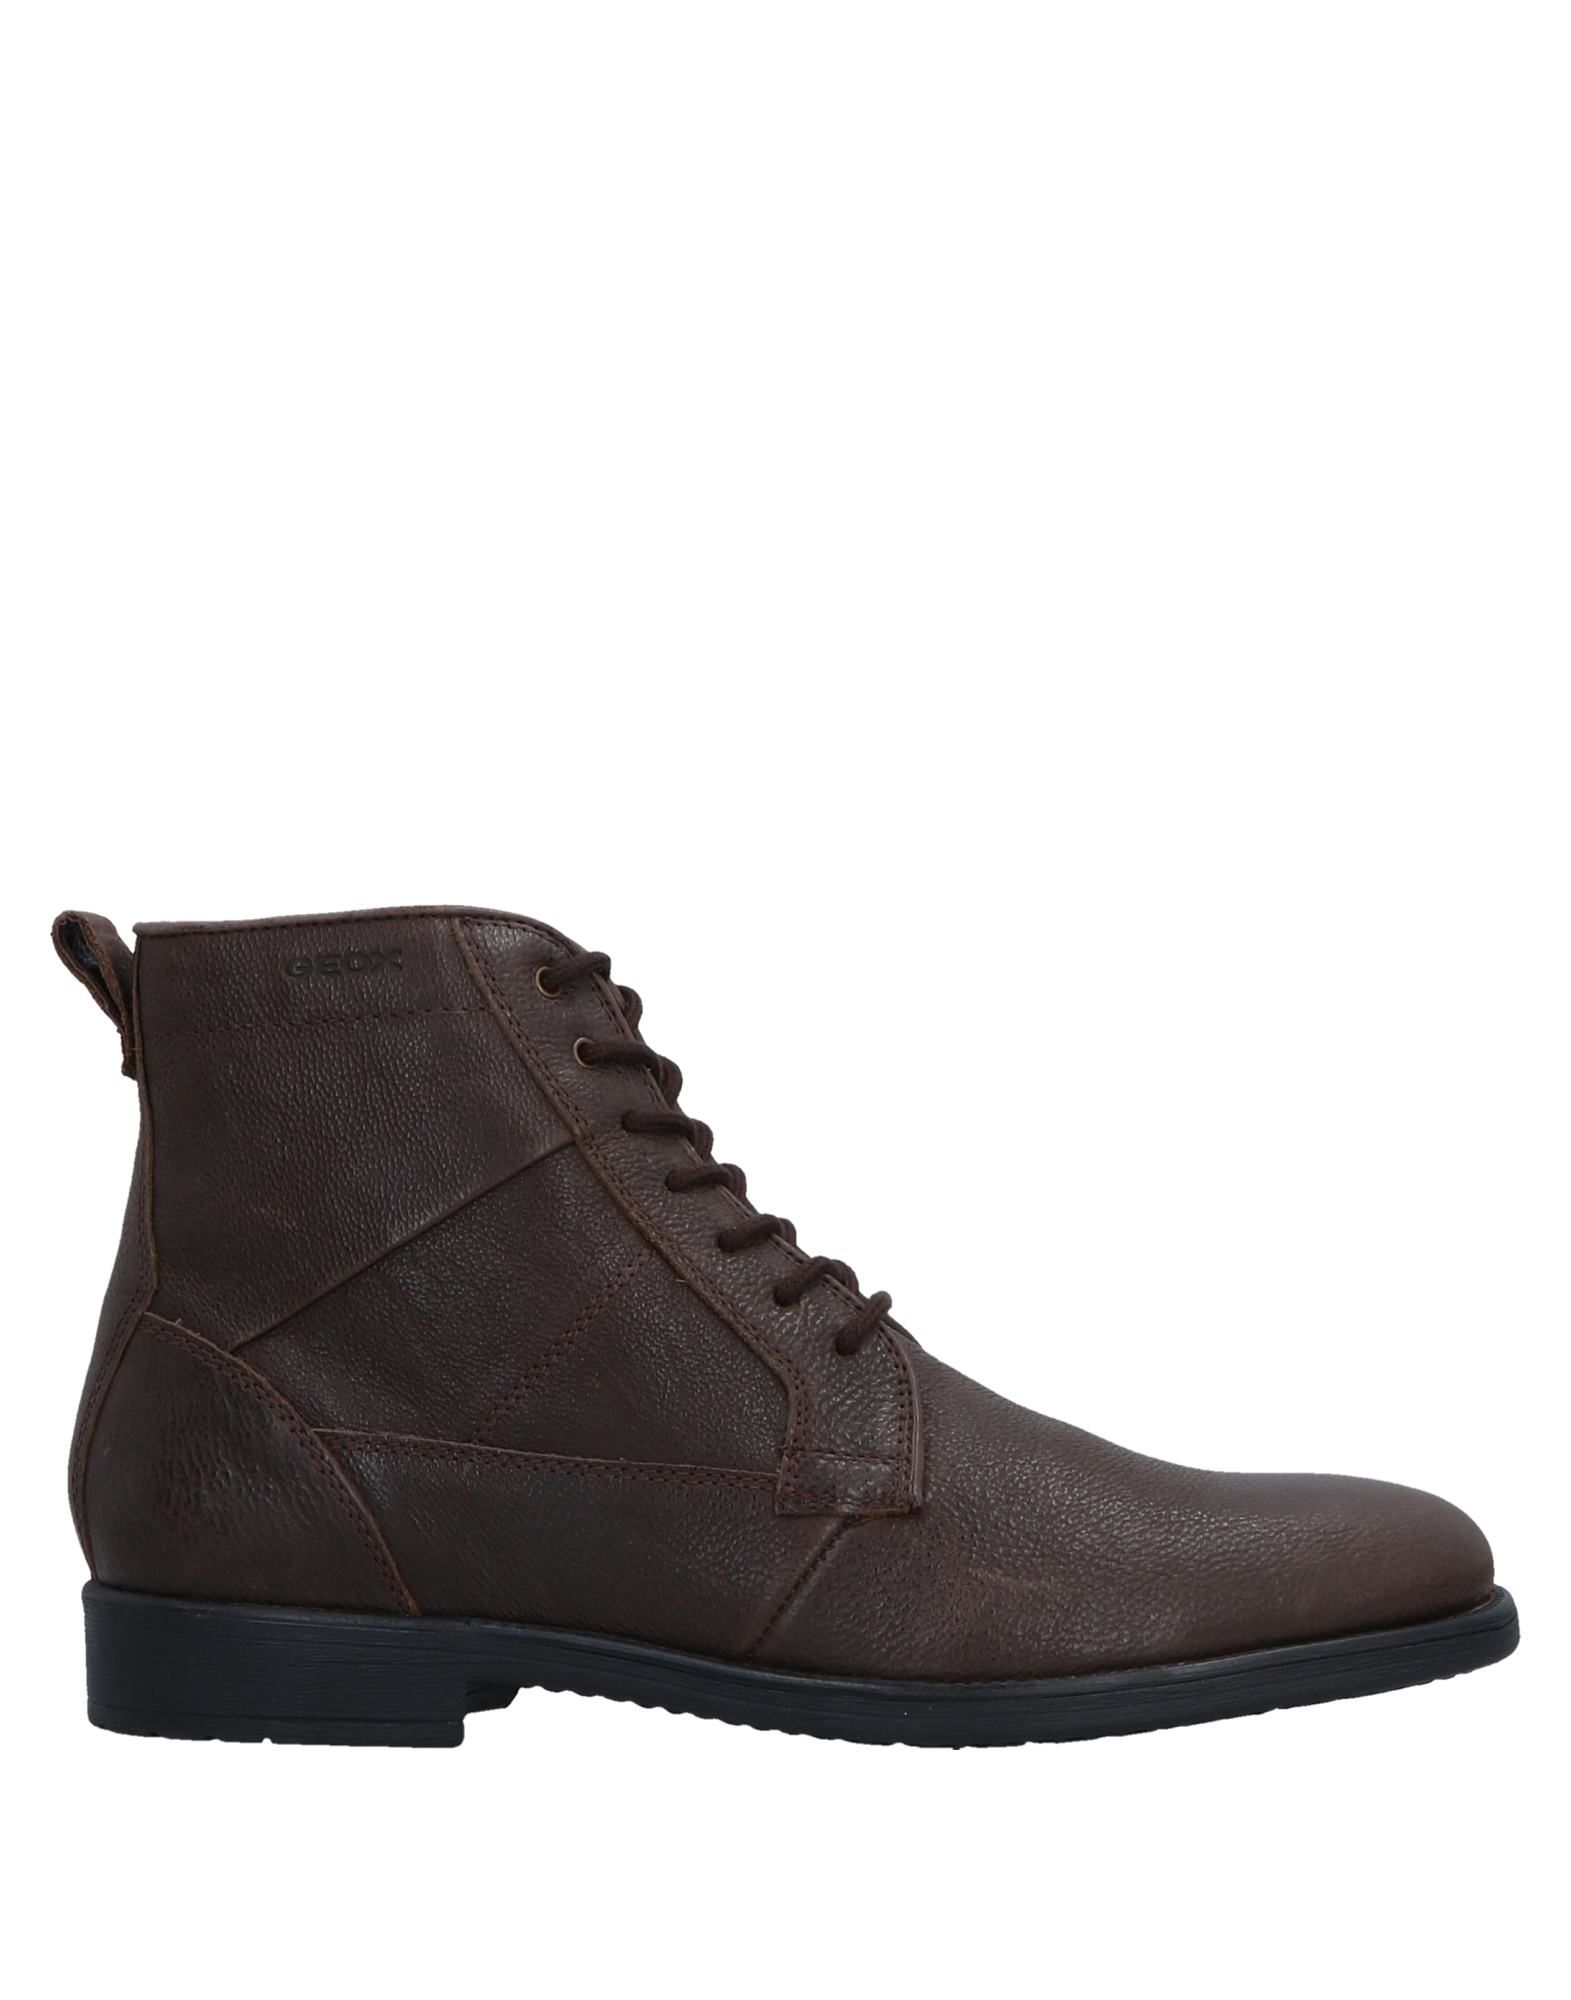 Geox on Boots - Men Geox Boots online on Geox  Australia - 11541094FH 90a65f